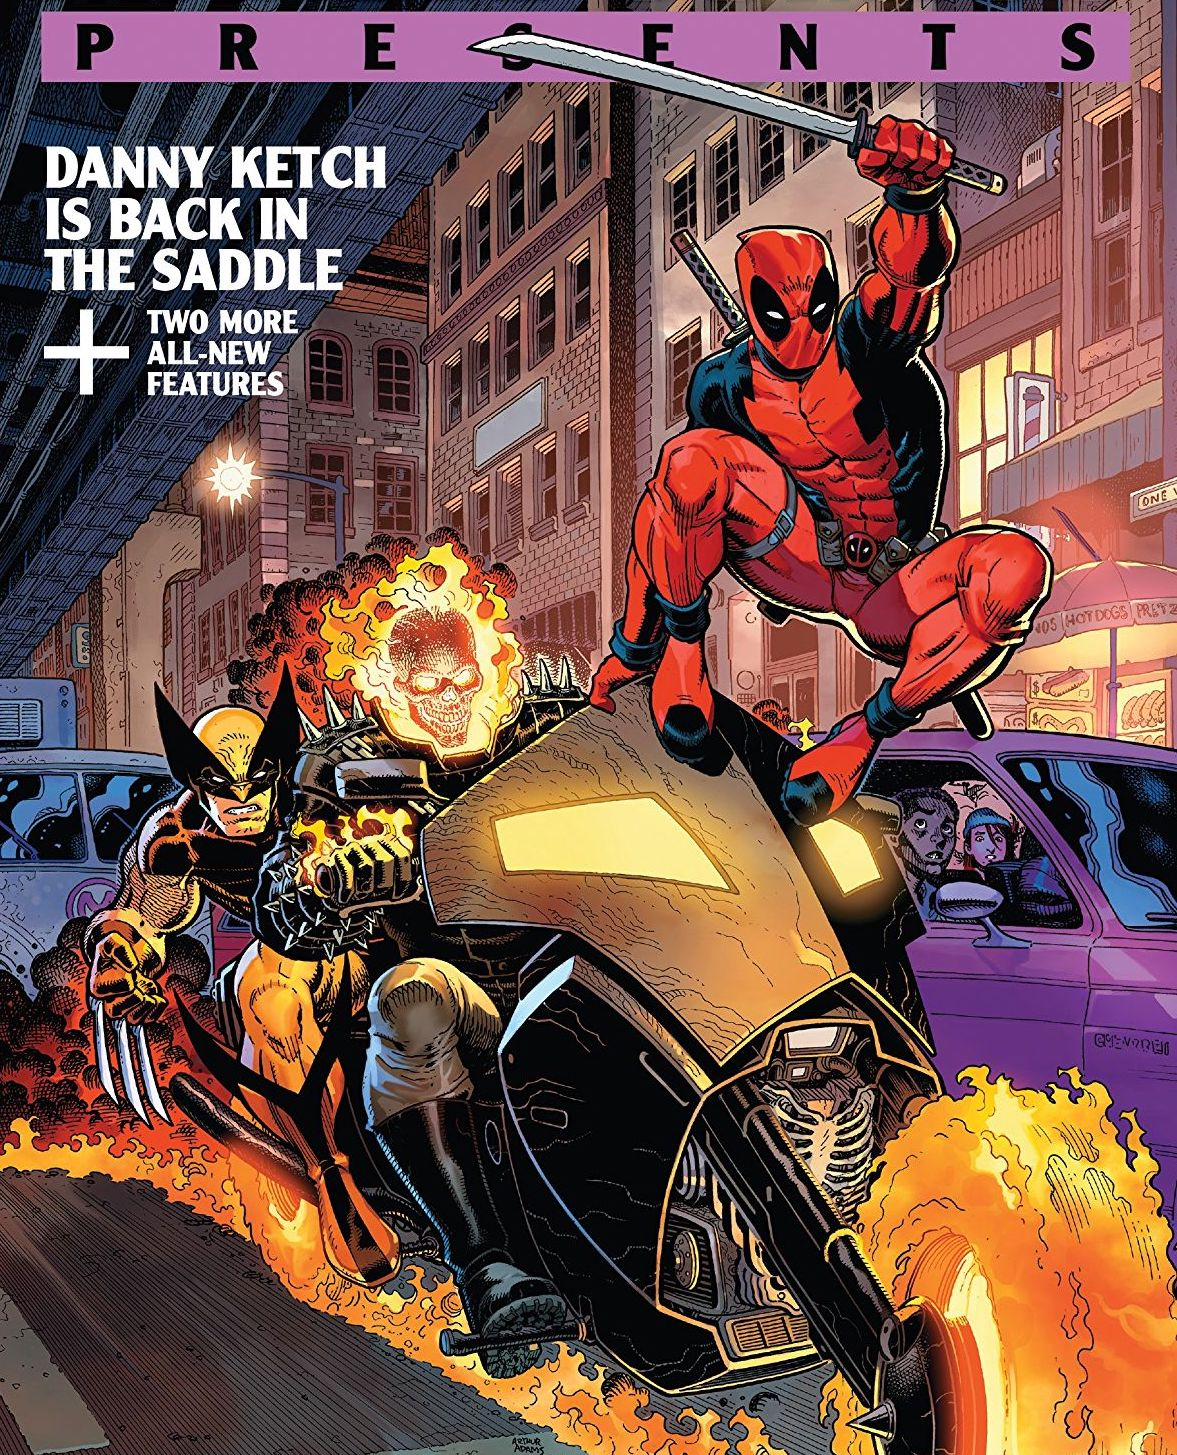 0b672366b64 Marvel Comics Presents #6 review: Riding into the '90s with ...